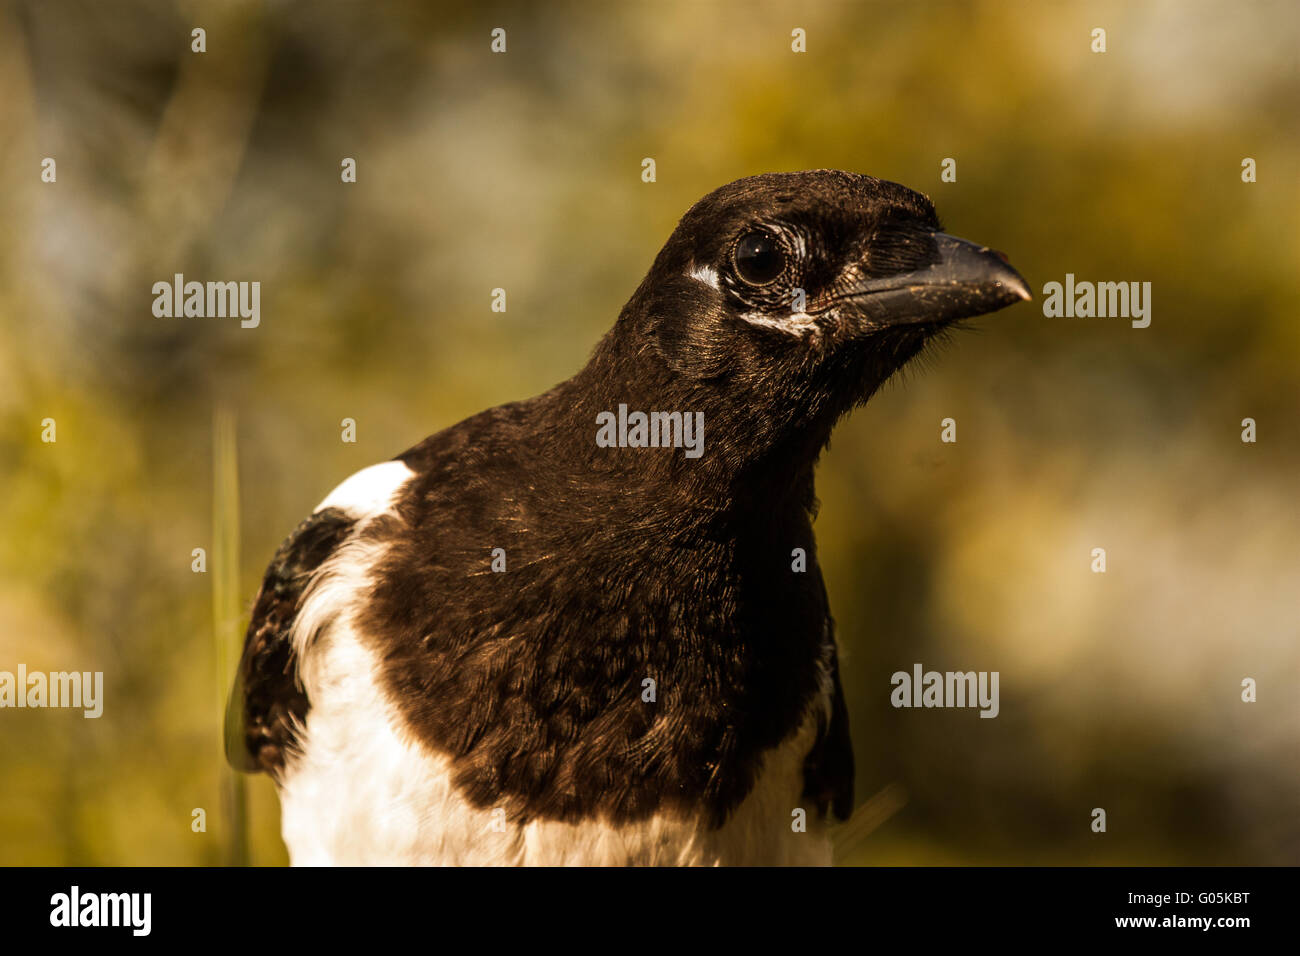 Young magpie (Pica pica) - Stock Image